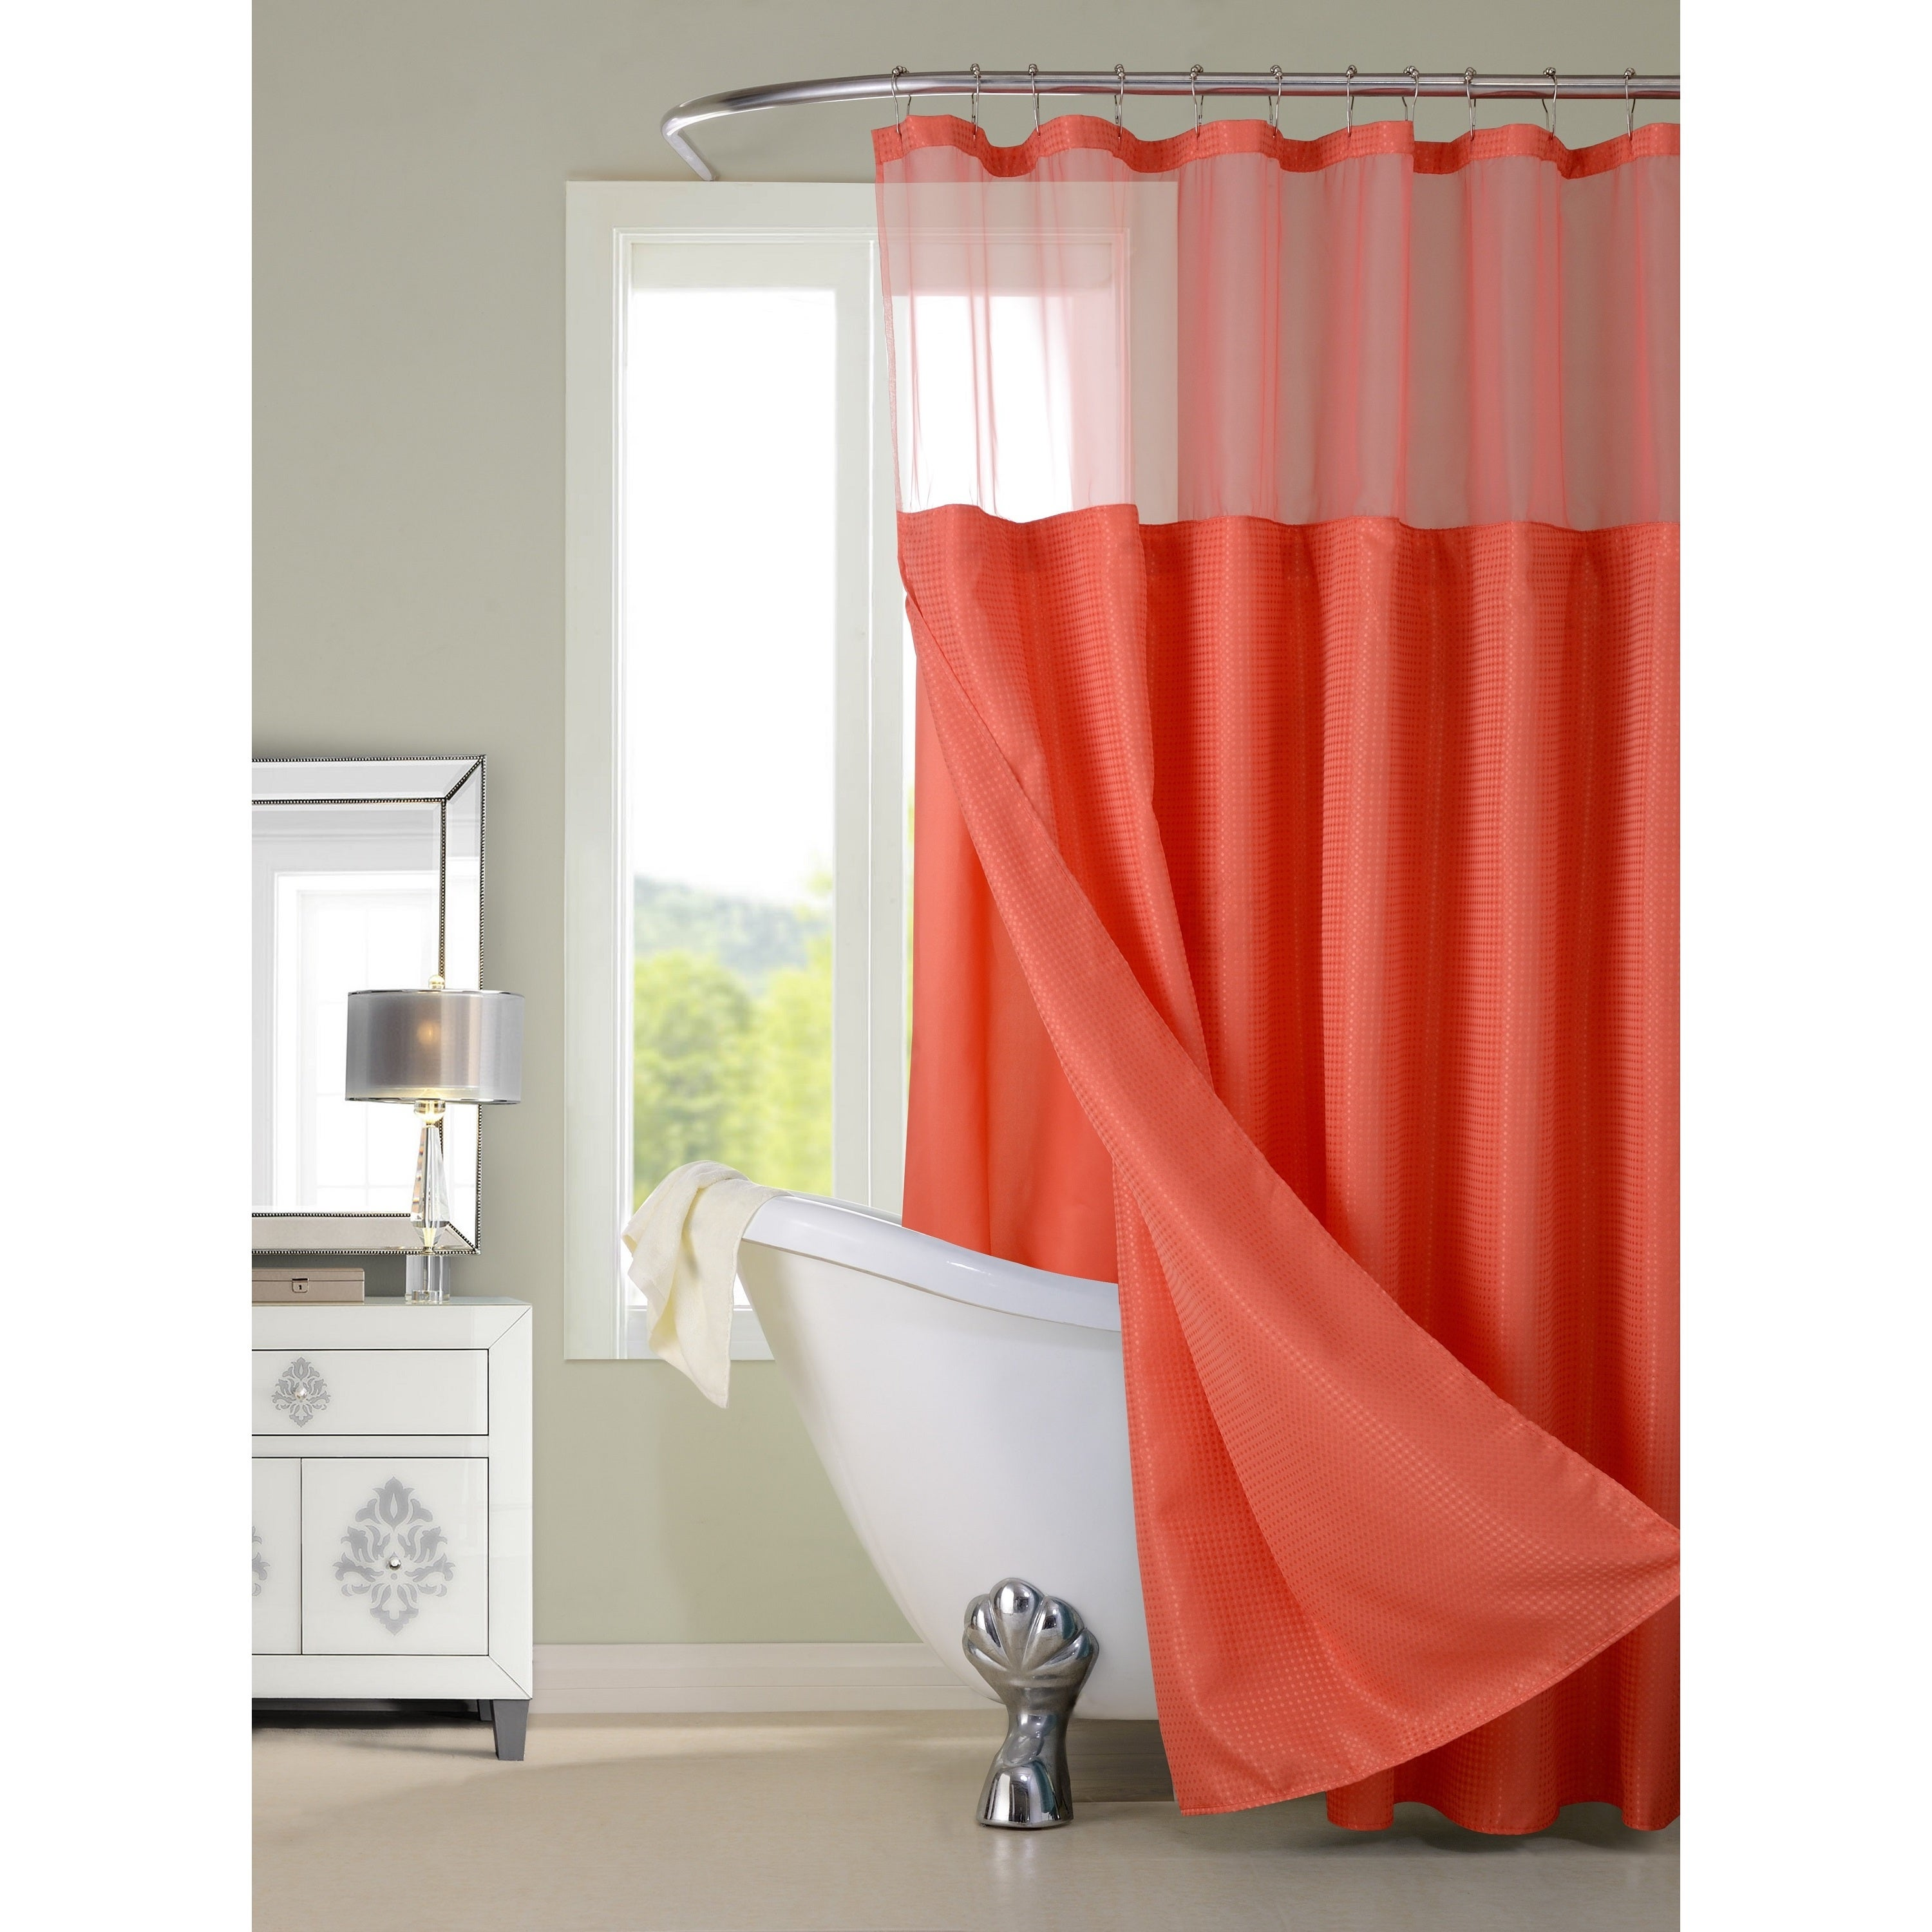 Hotel Shower Curtain with Detachable Liner - Free Shipping On Orders Over  $45 - Overstock.com - 20966767